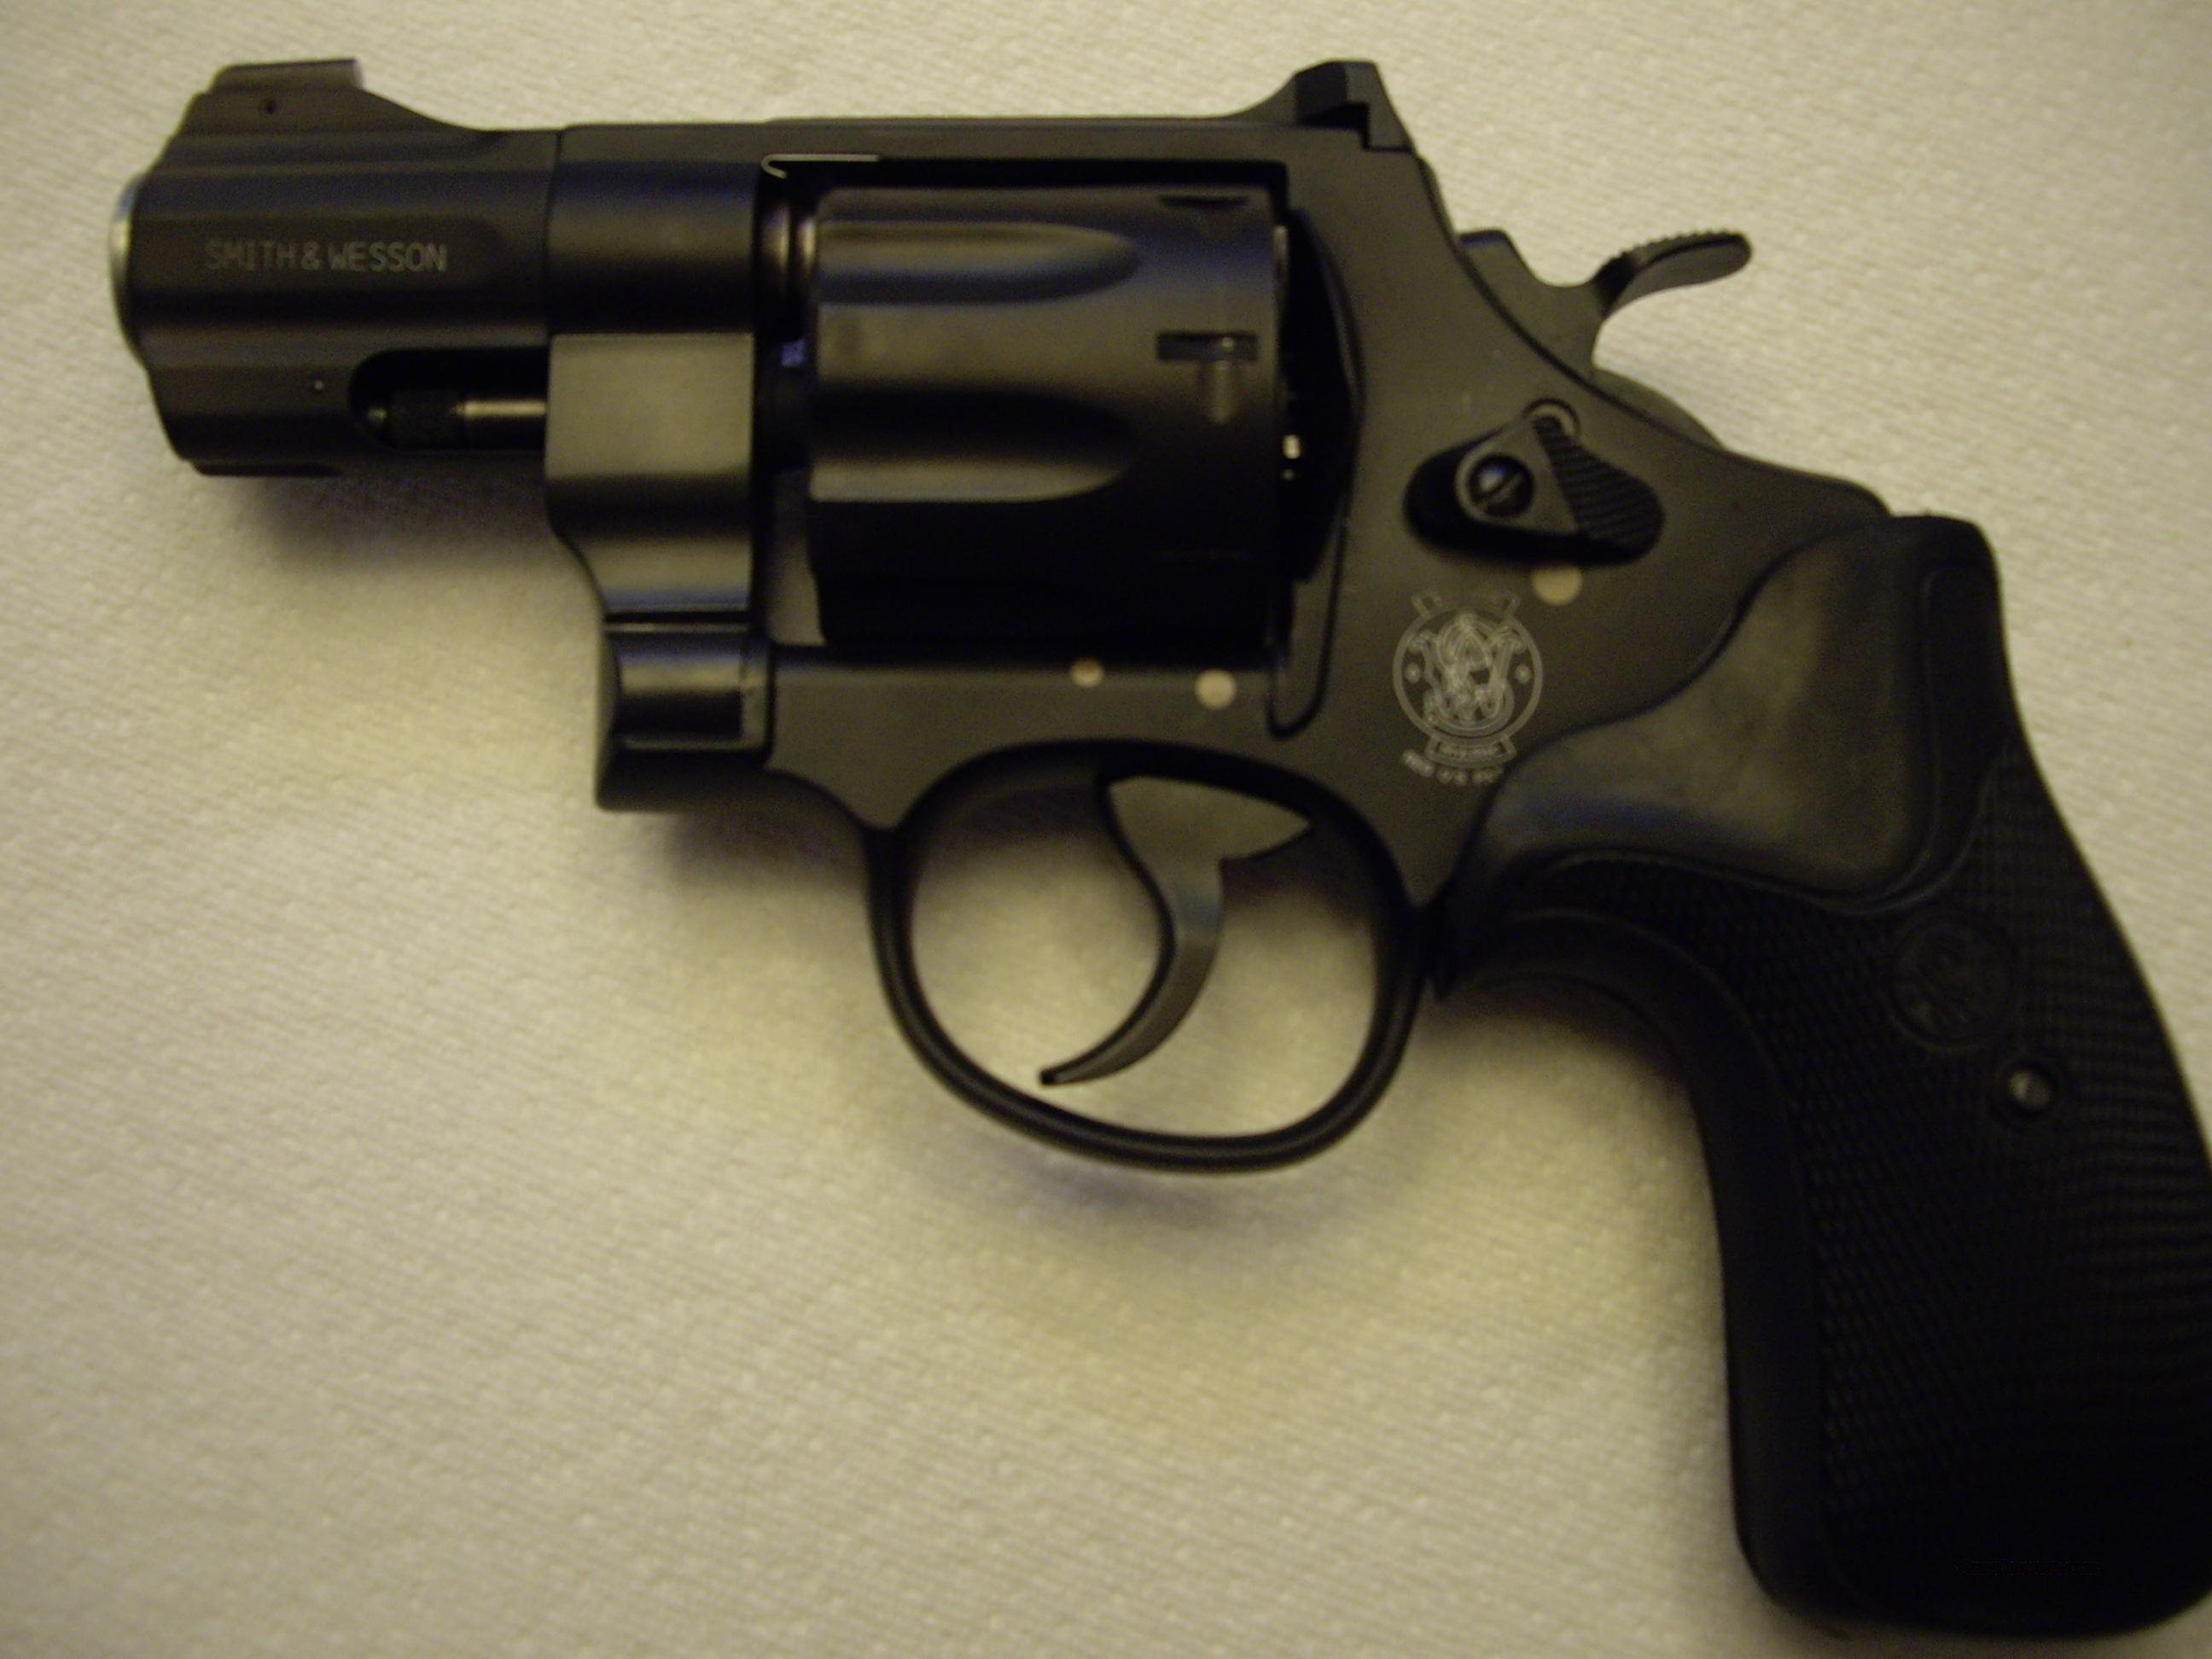 Smith and Wesson model 327 NightGuard .357 Revolver 8 Round  Guns > Pistols > Smith & Wesson Revolvers > Full Frame Revolver